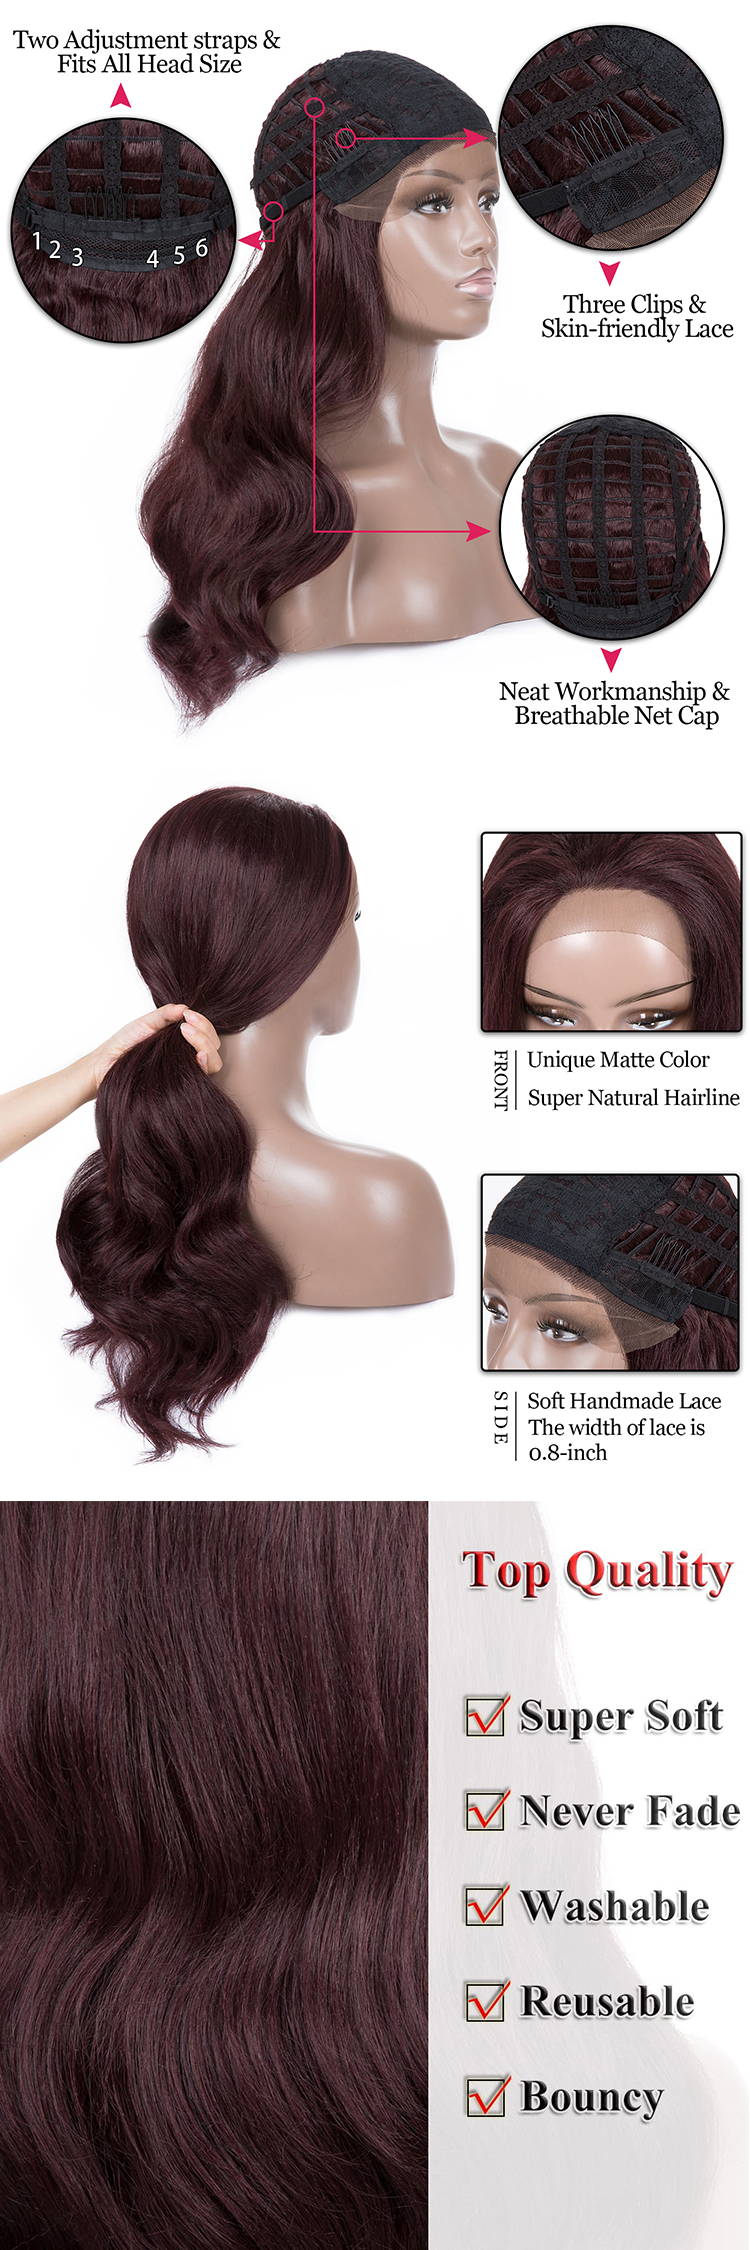 Companies looking for distributor best selling products synthetic hair wig e025be9a4632